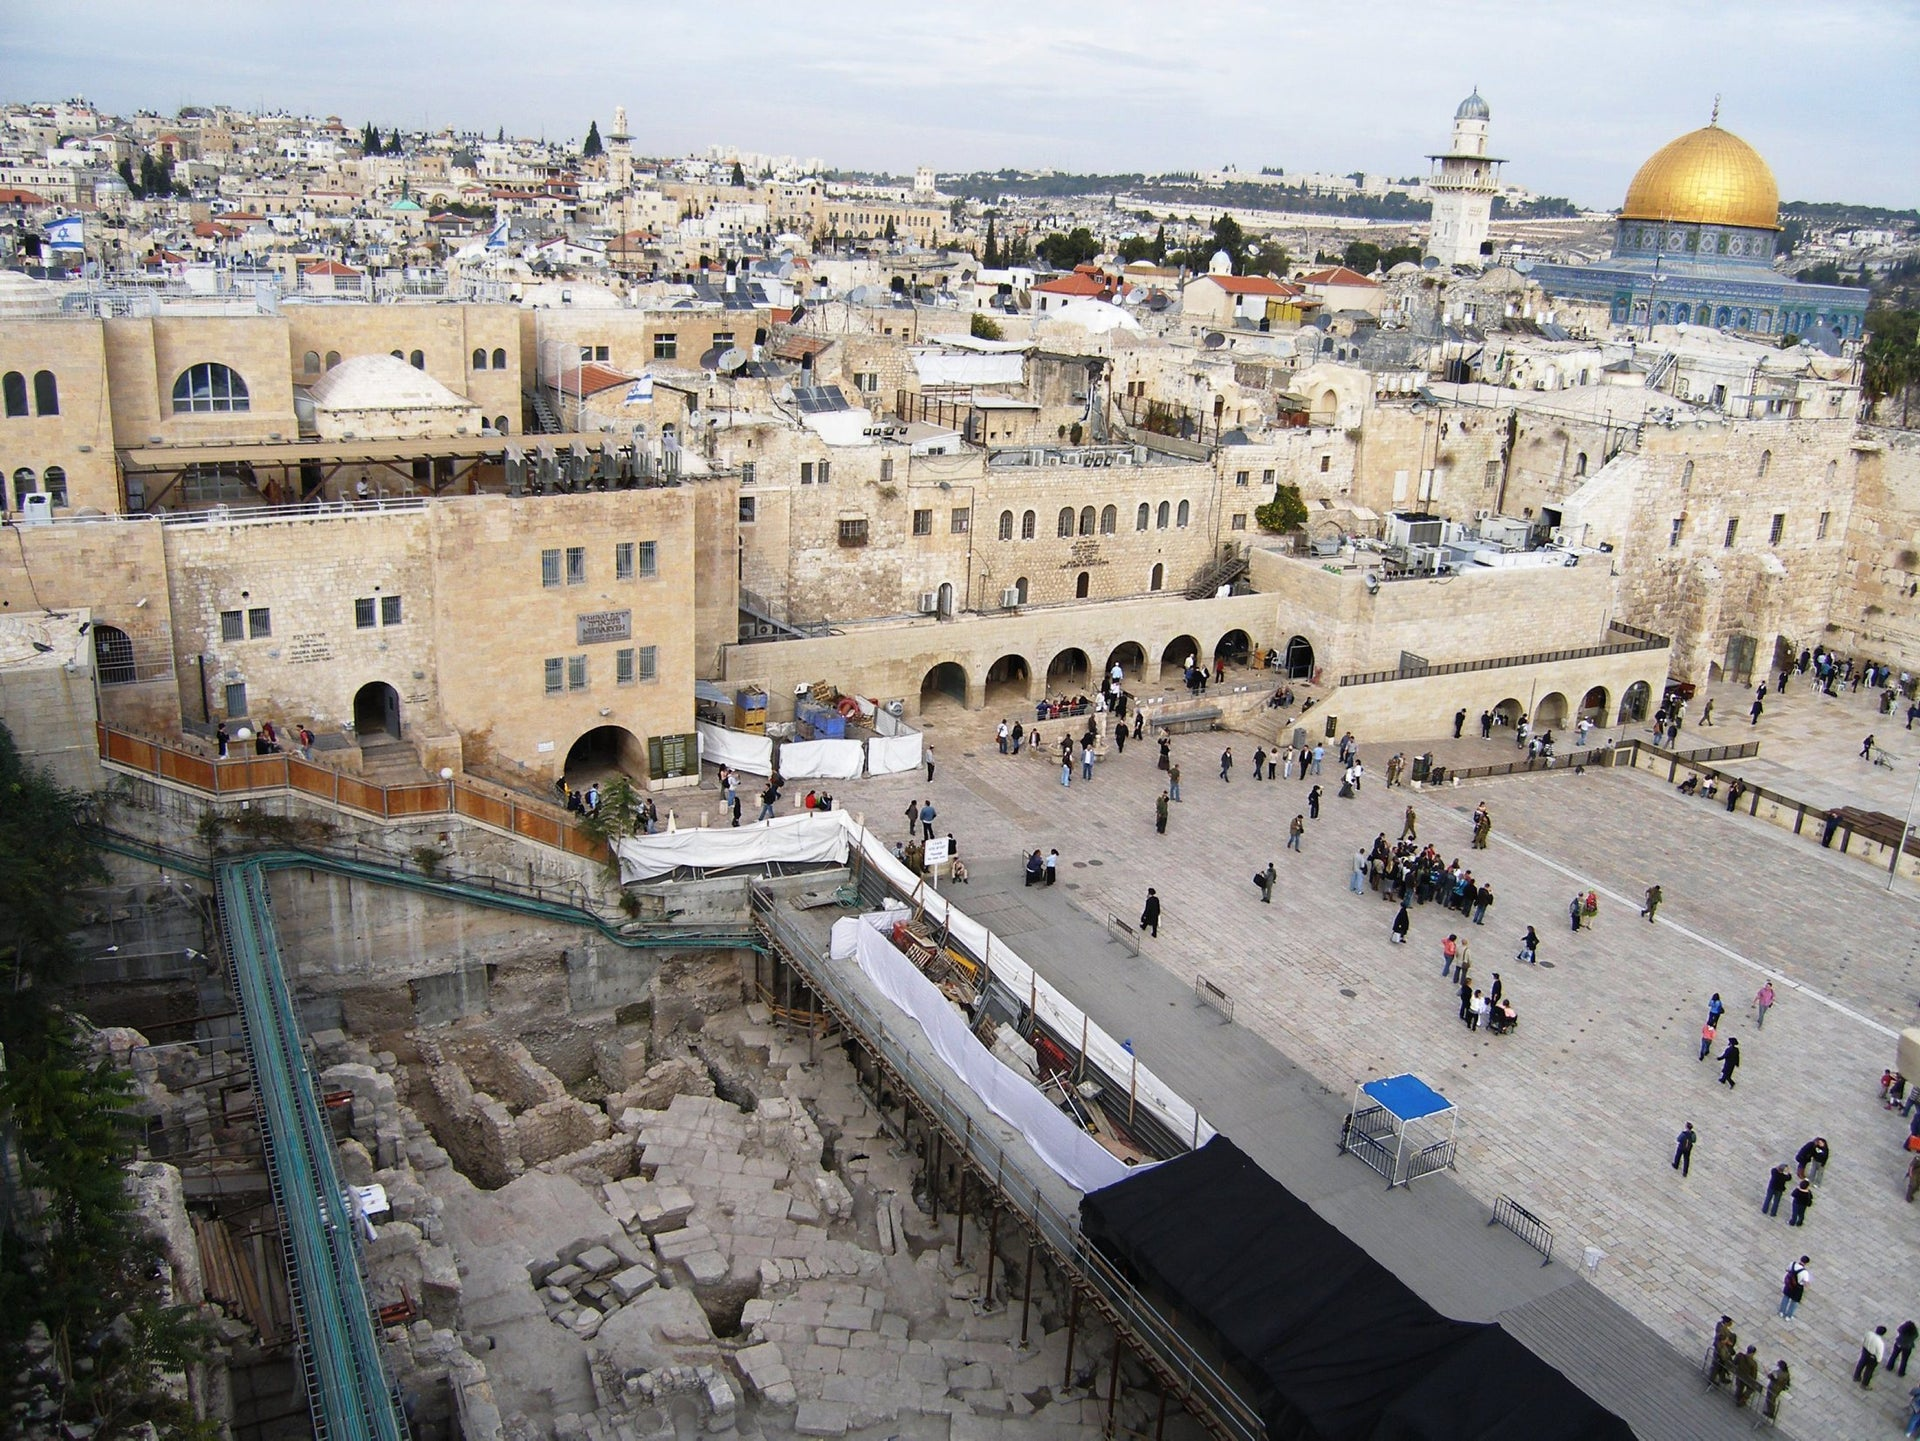 The excavation in the Western Wall plaza (left corner)